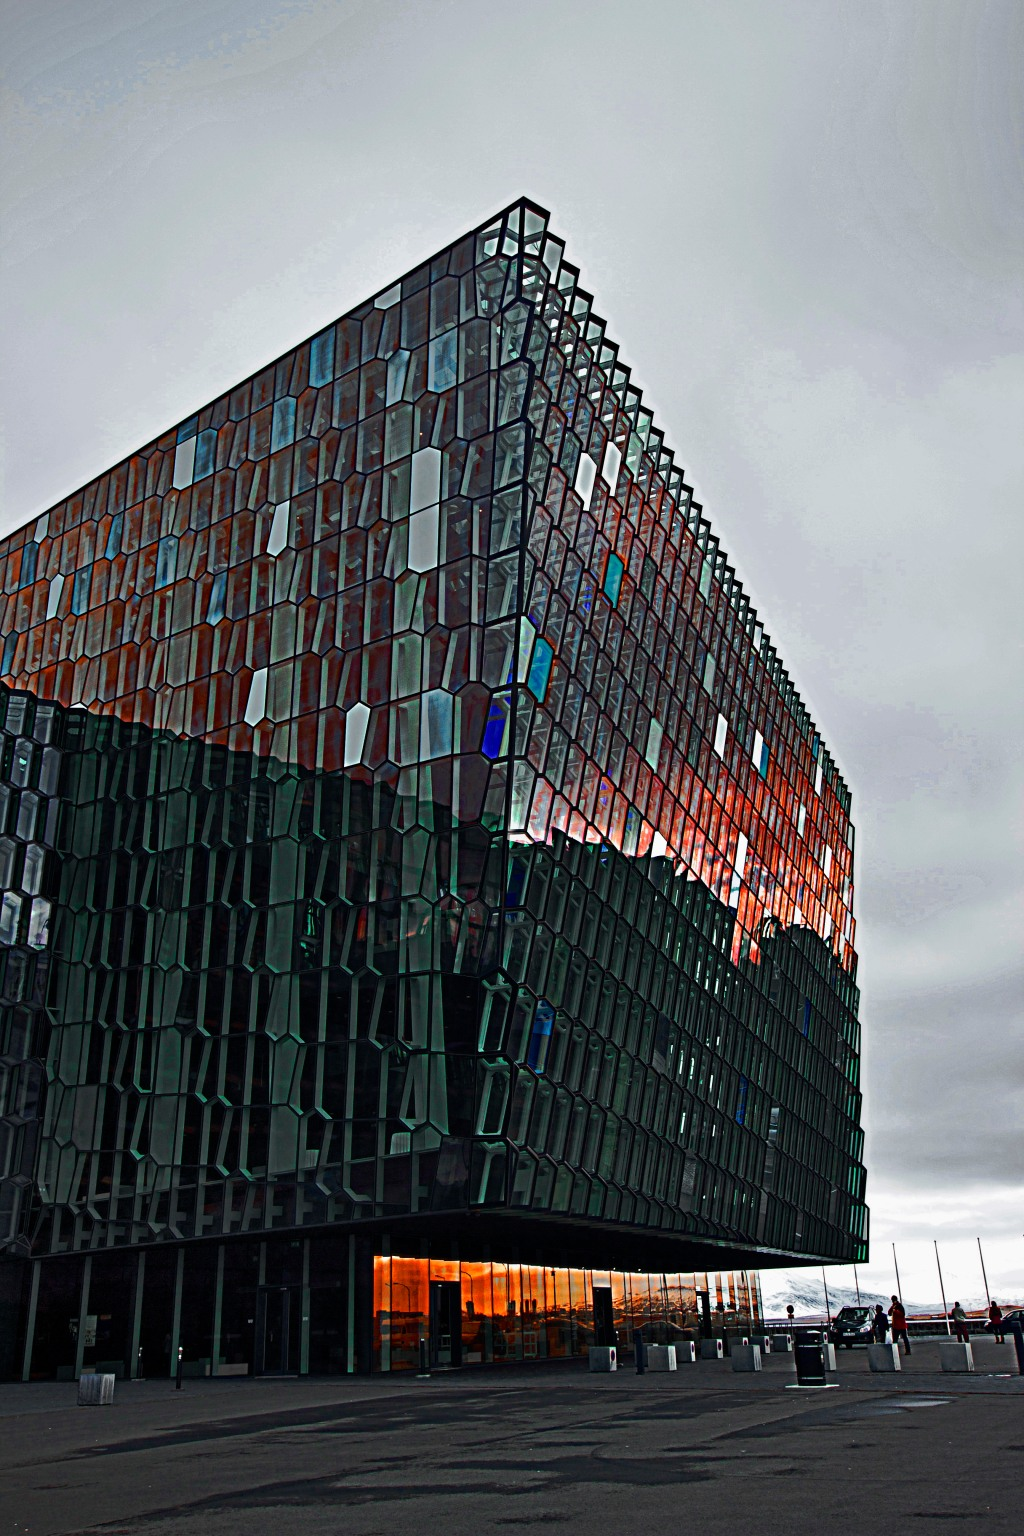 Harpa Concert Hall, Reykjavik. Saturation boosted in PS